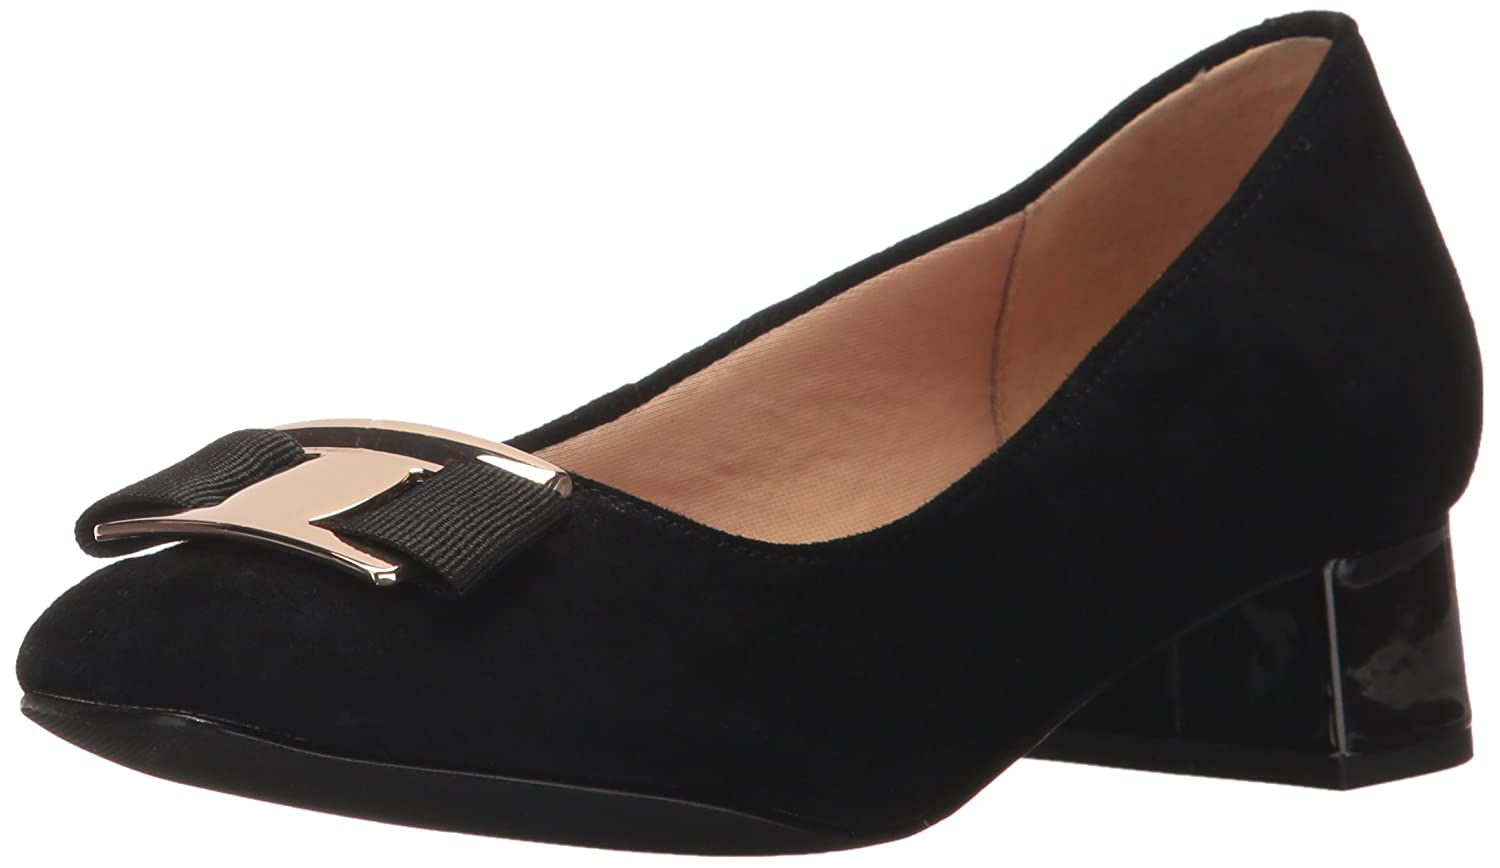 Trotters Women's Louise Dress Pump B01MZ2HNB9 10.5 W US|Black